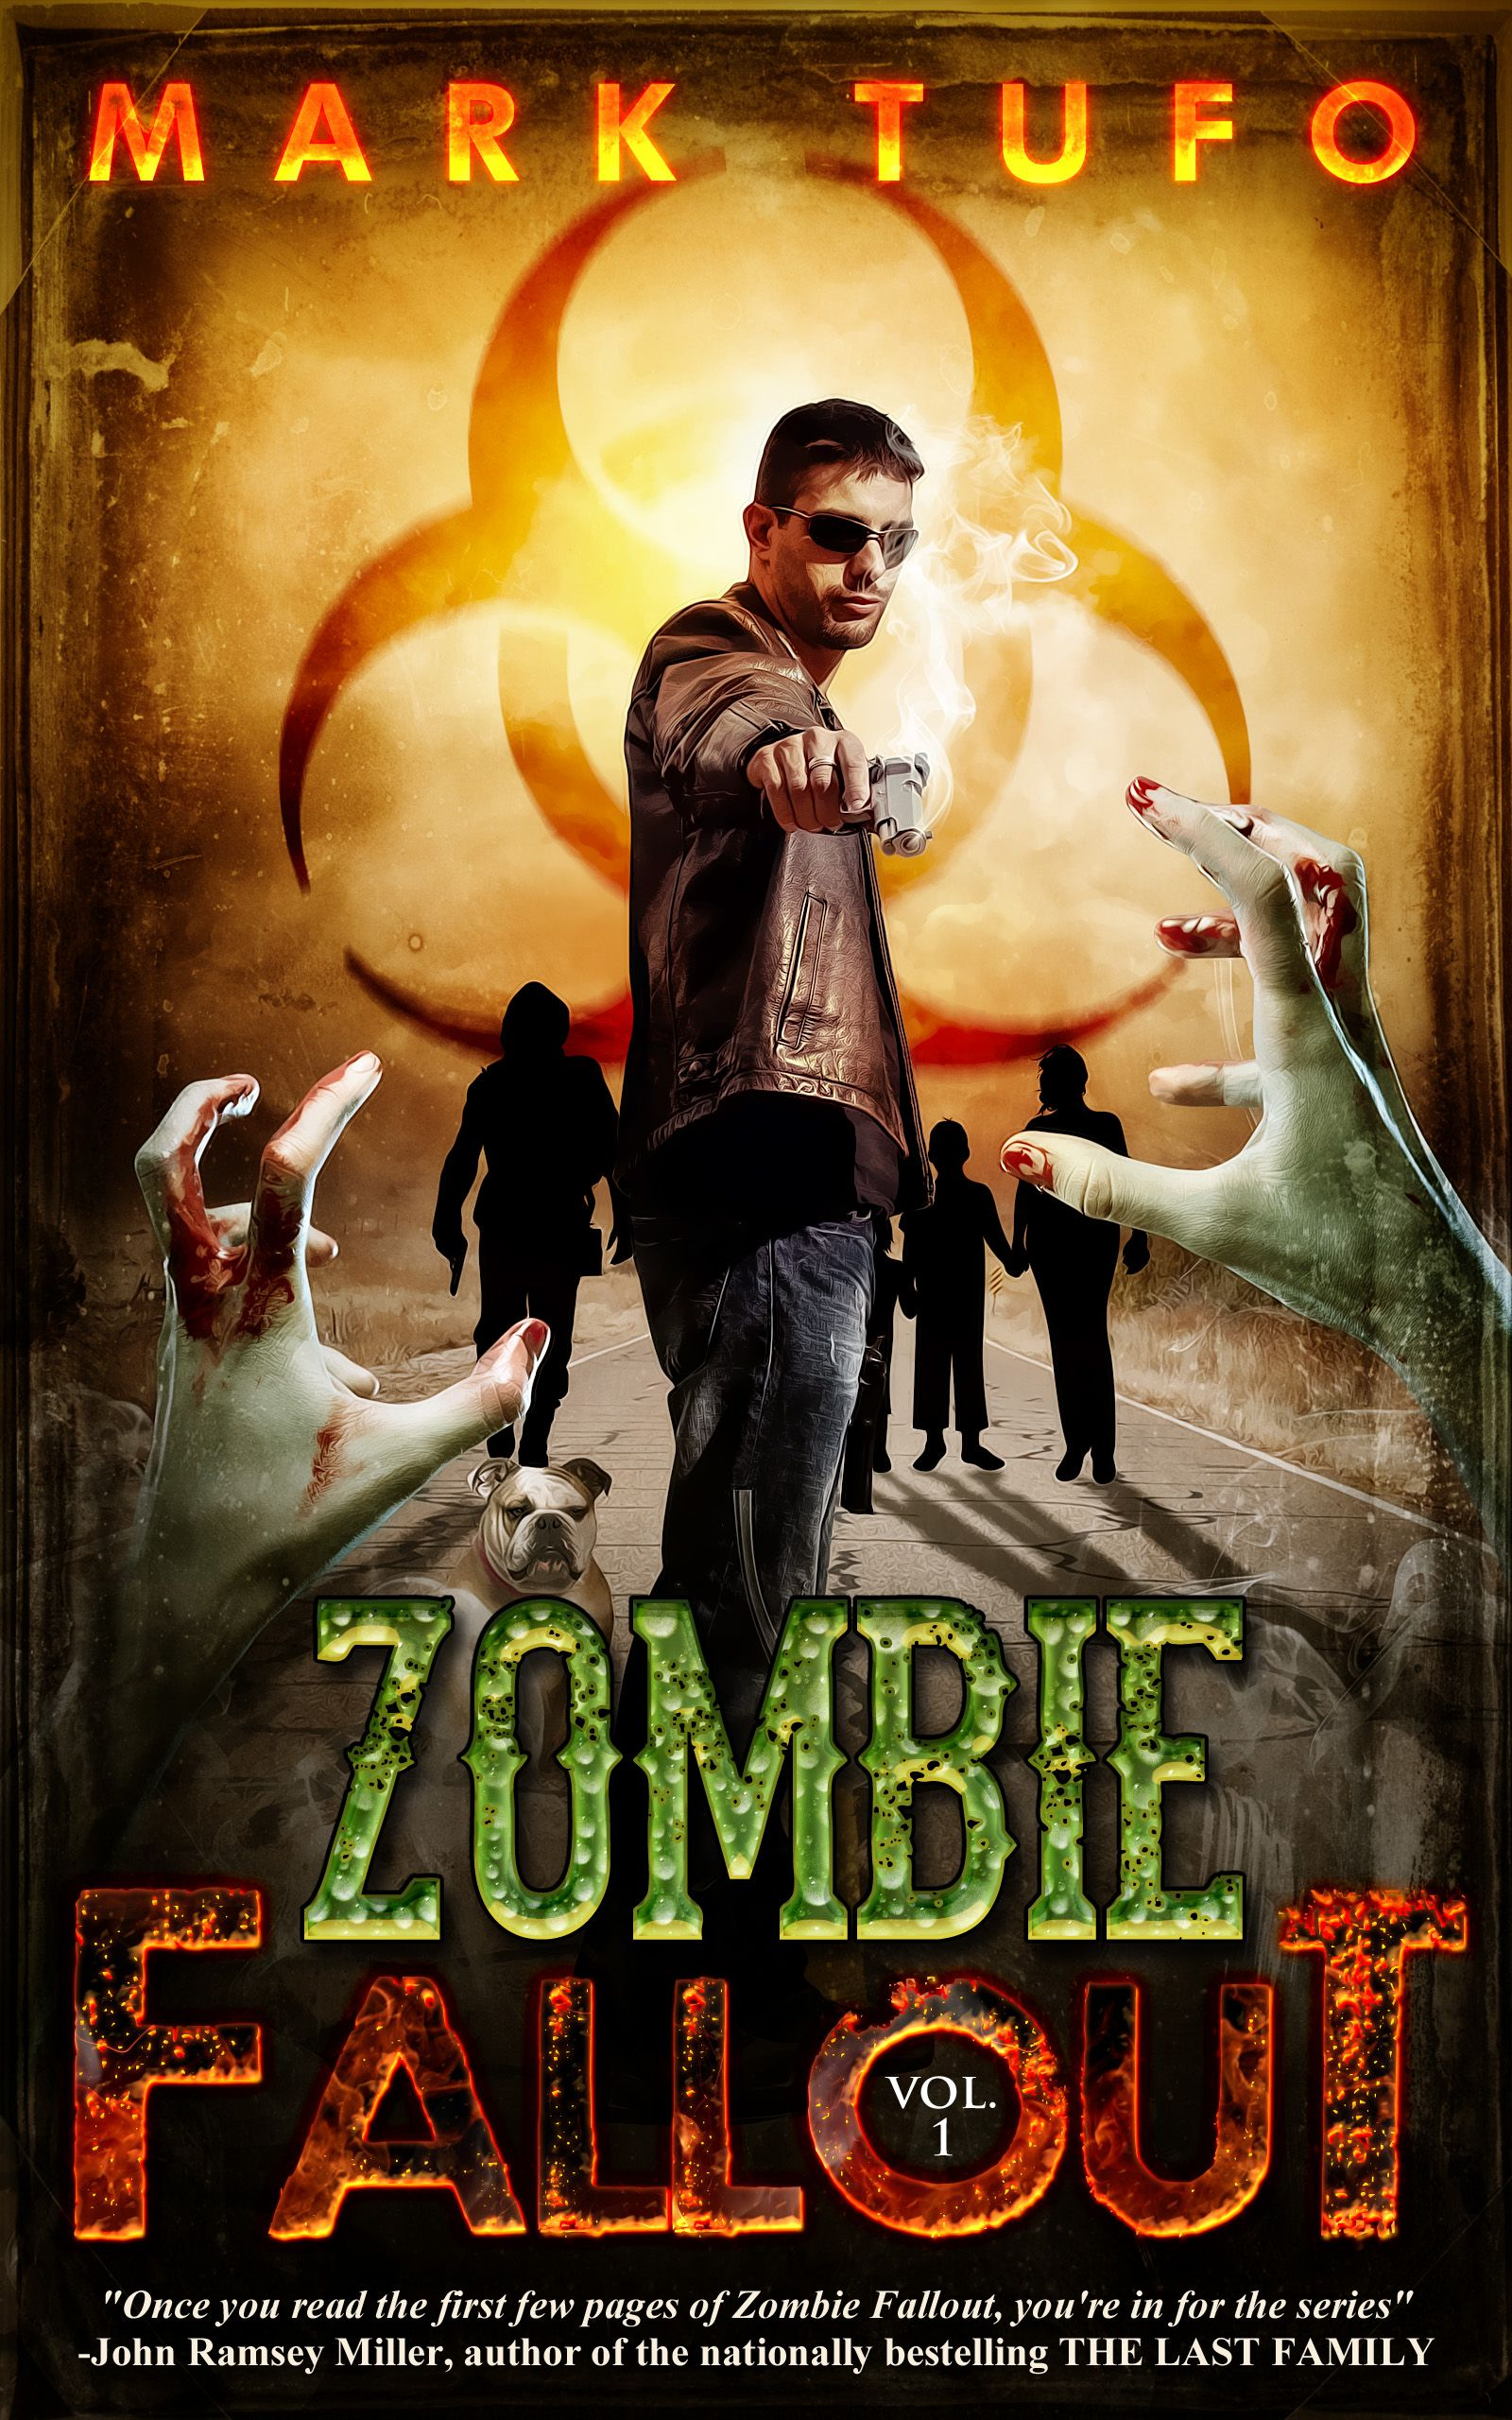 promocave Books Zombie Fallout by Mark Tufo